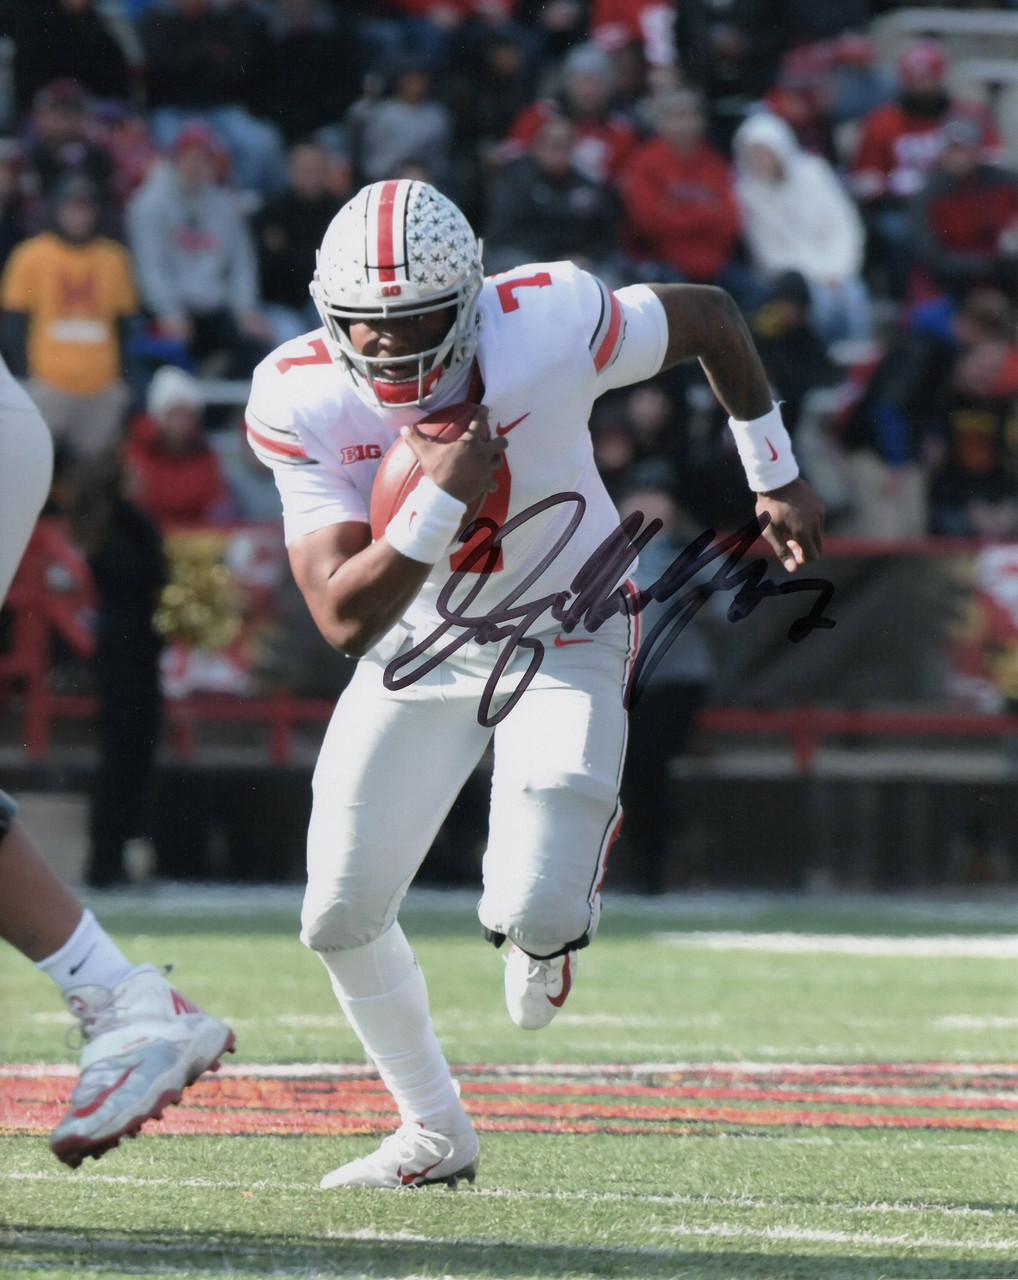 Dwayne Haskins Ohio State Buckeyes 8-8 8x10 Autographed Photo - Certified Authentic